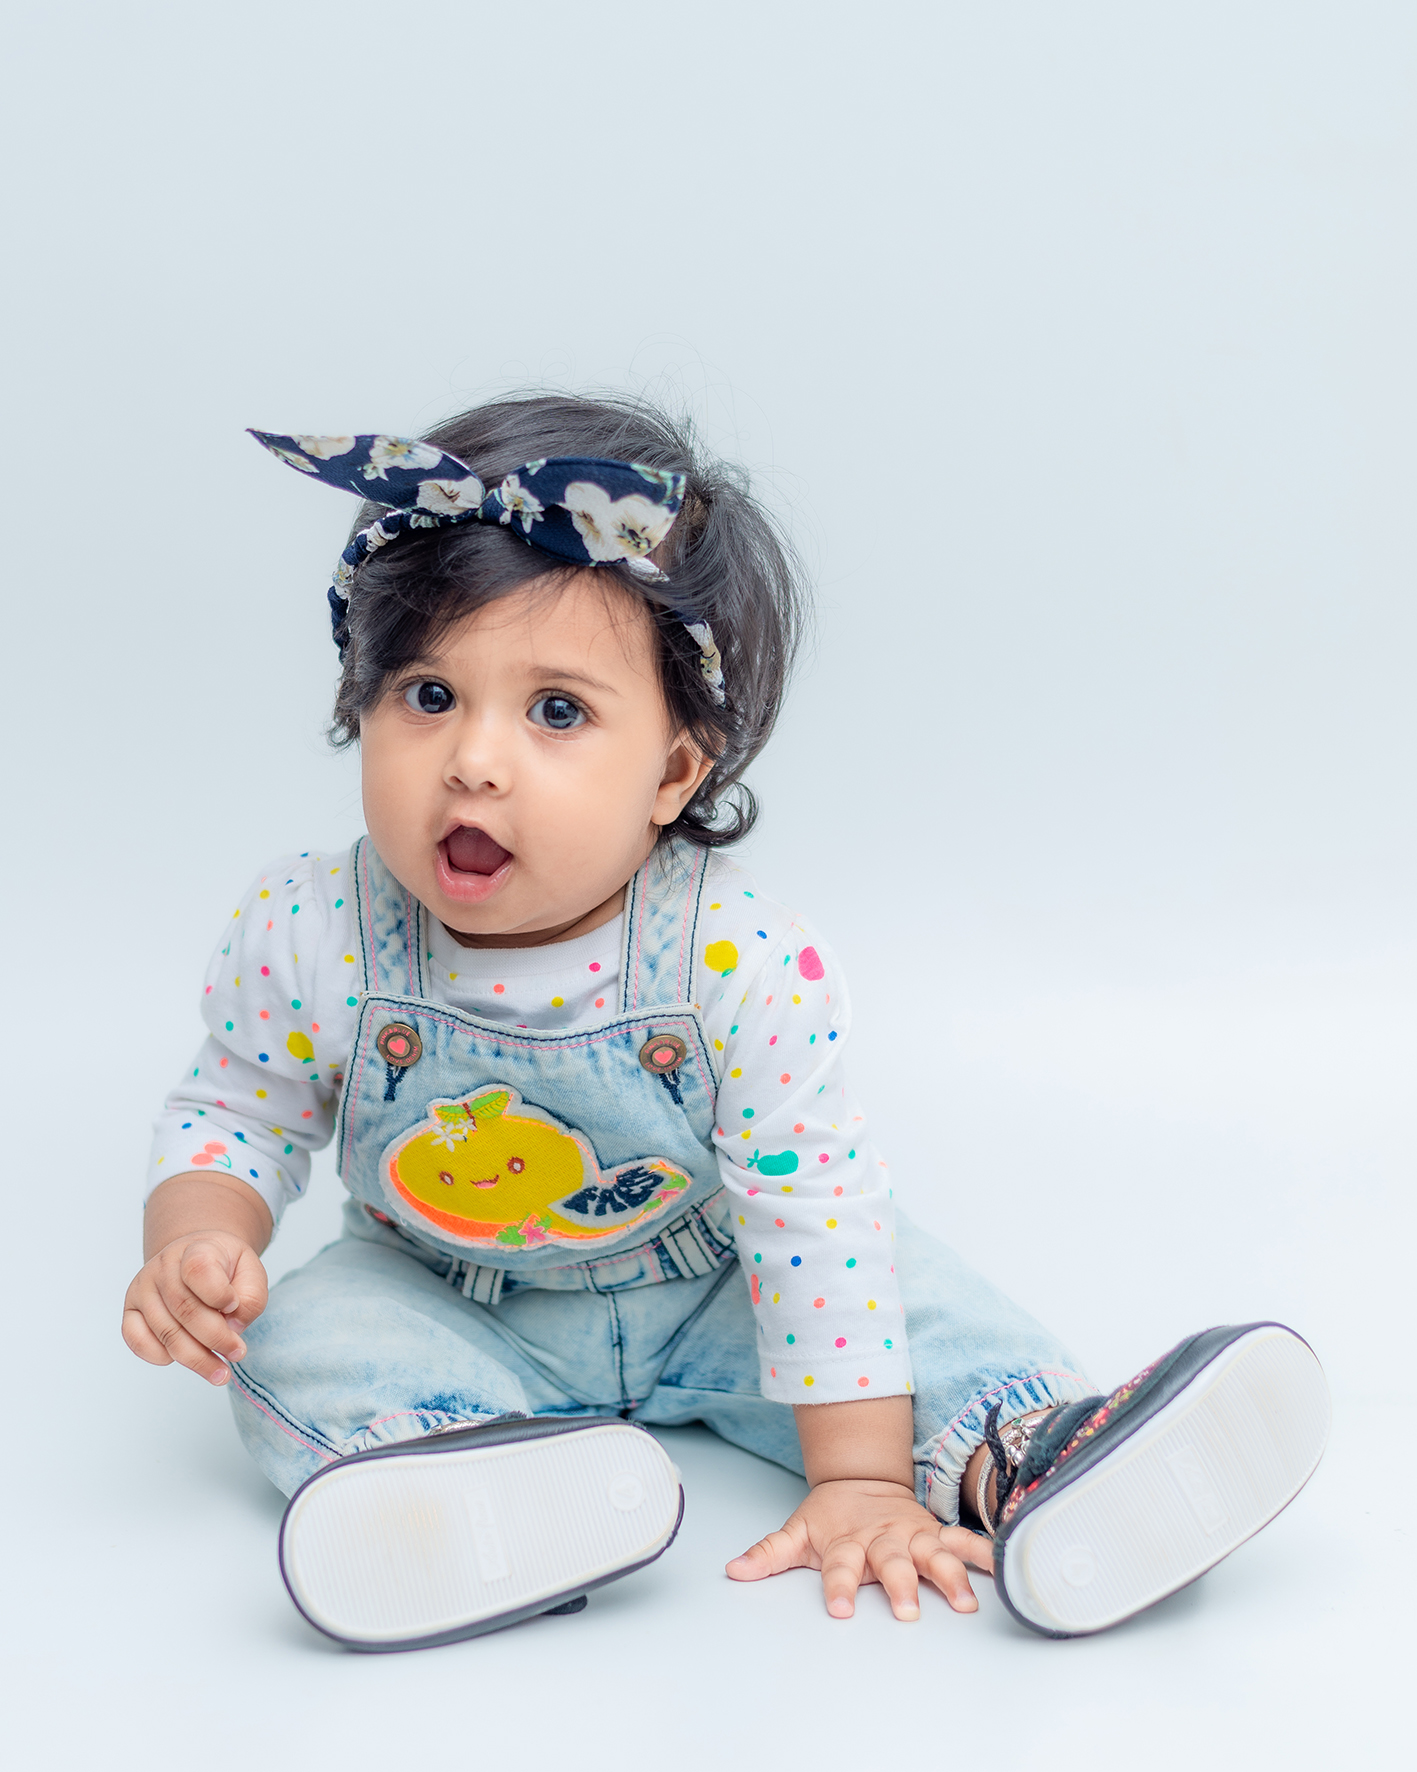 Studio Light by Azhar Photography | Kids photography | Baby photography